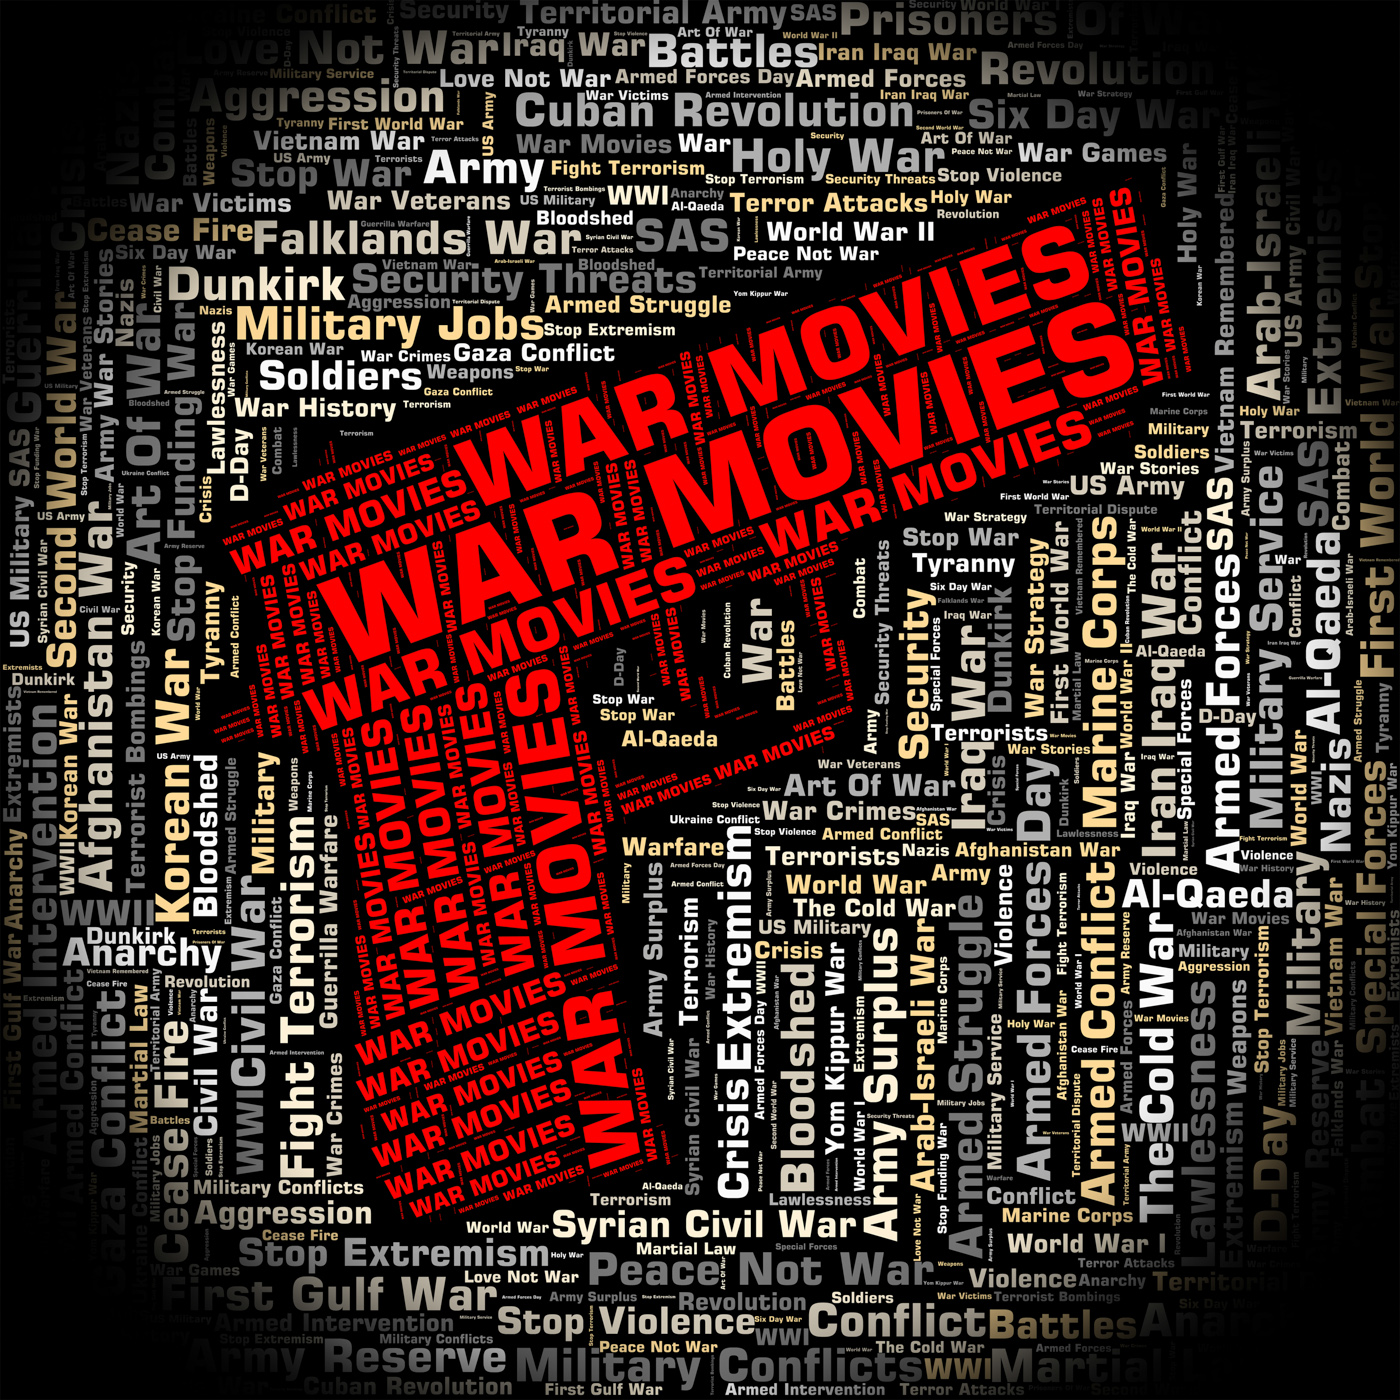 War movies represents military action and cinema photo